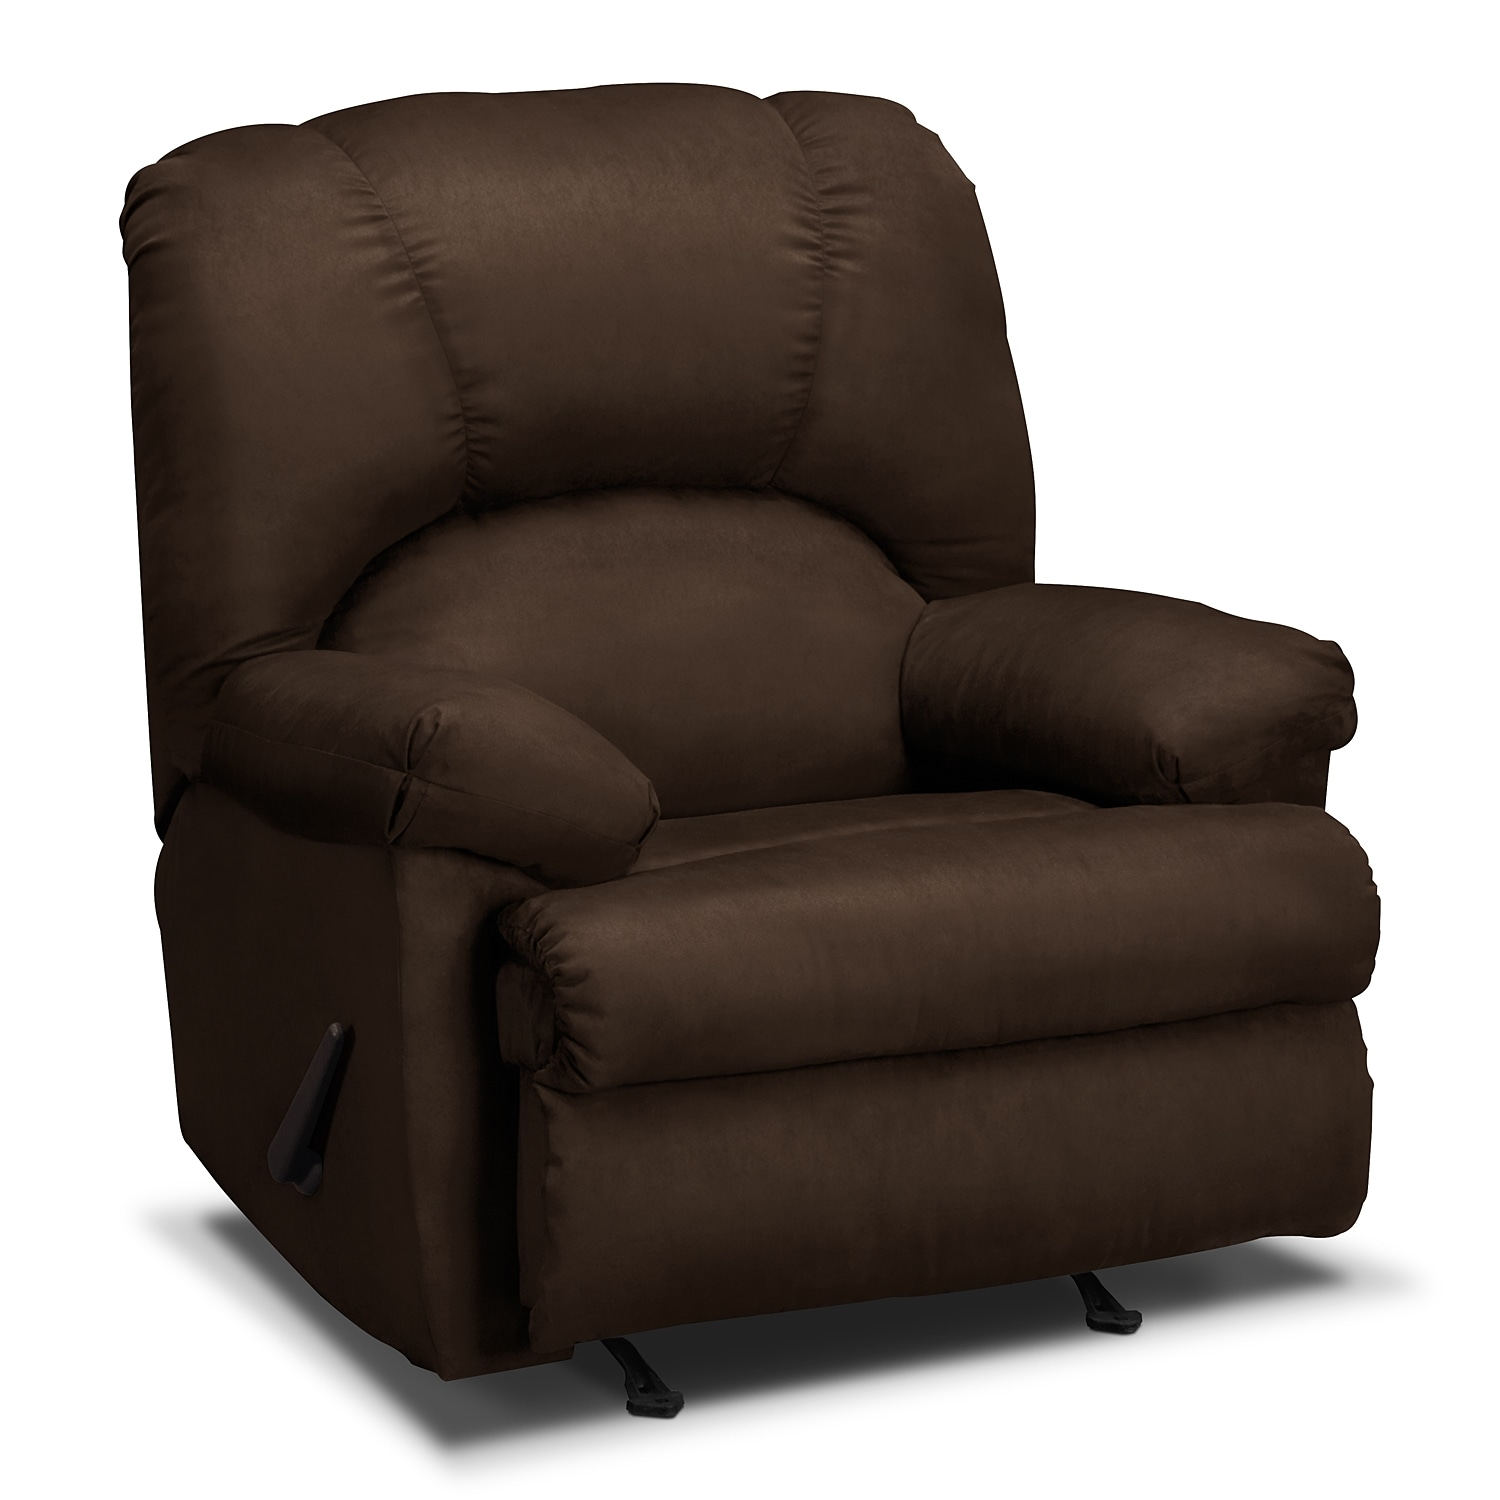 Quincy Rocker Recliner